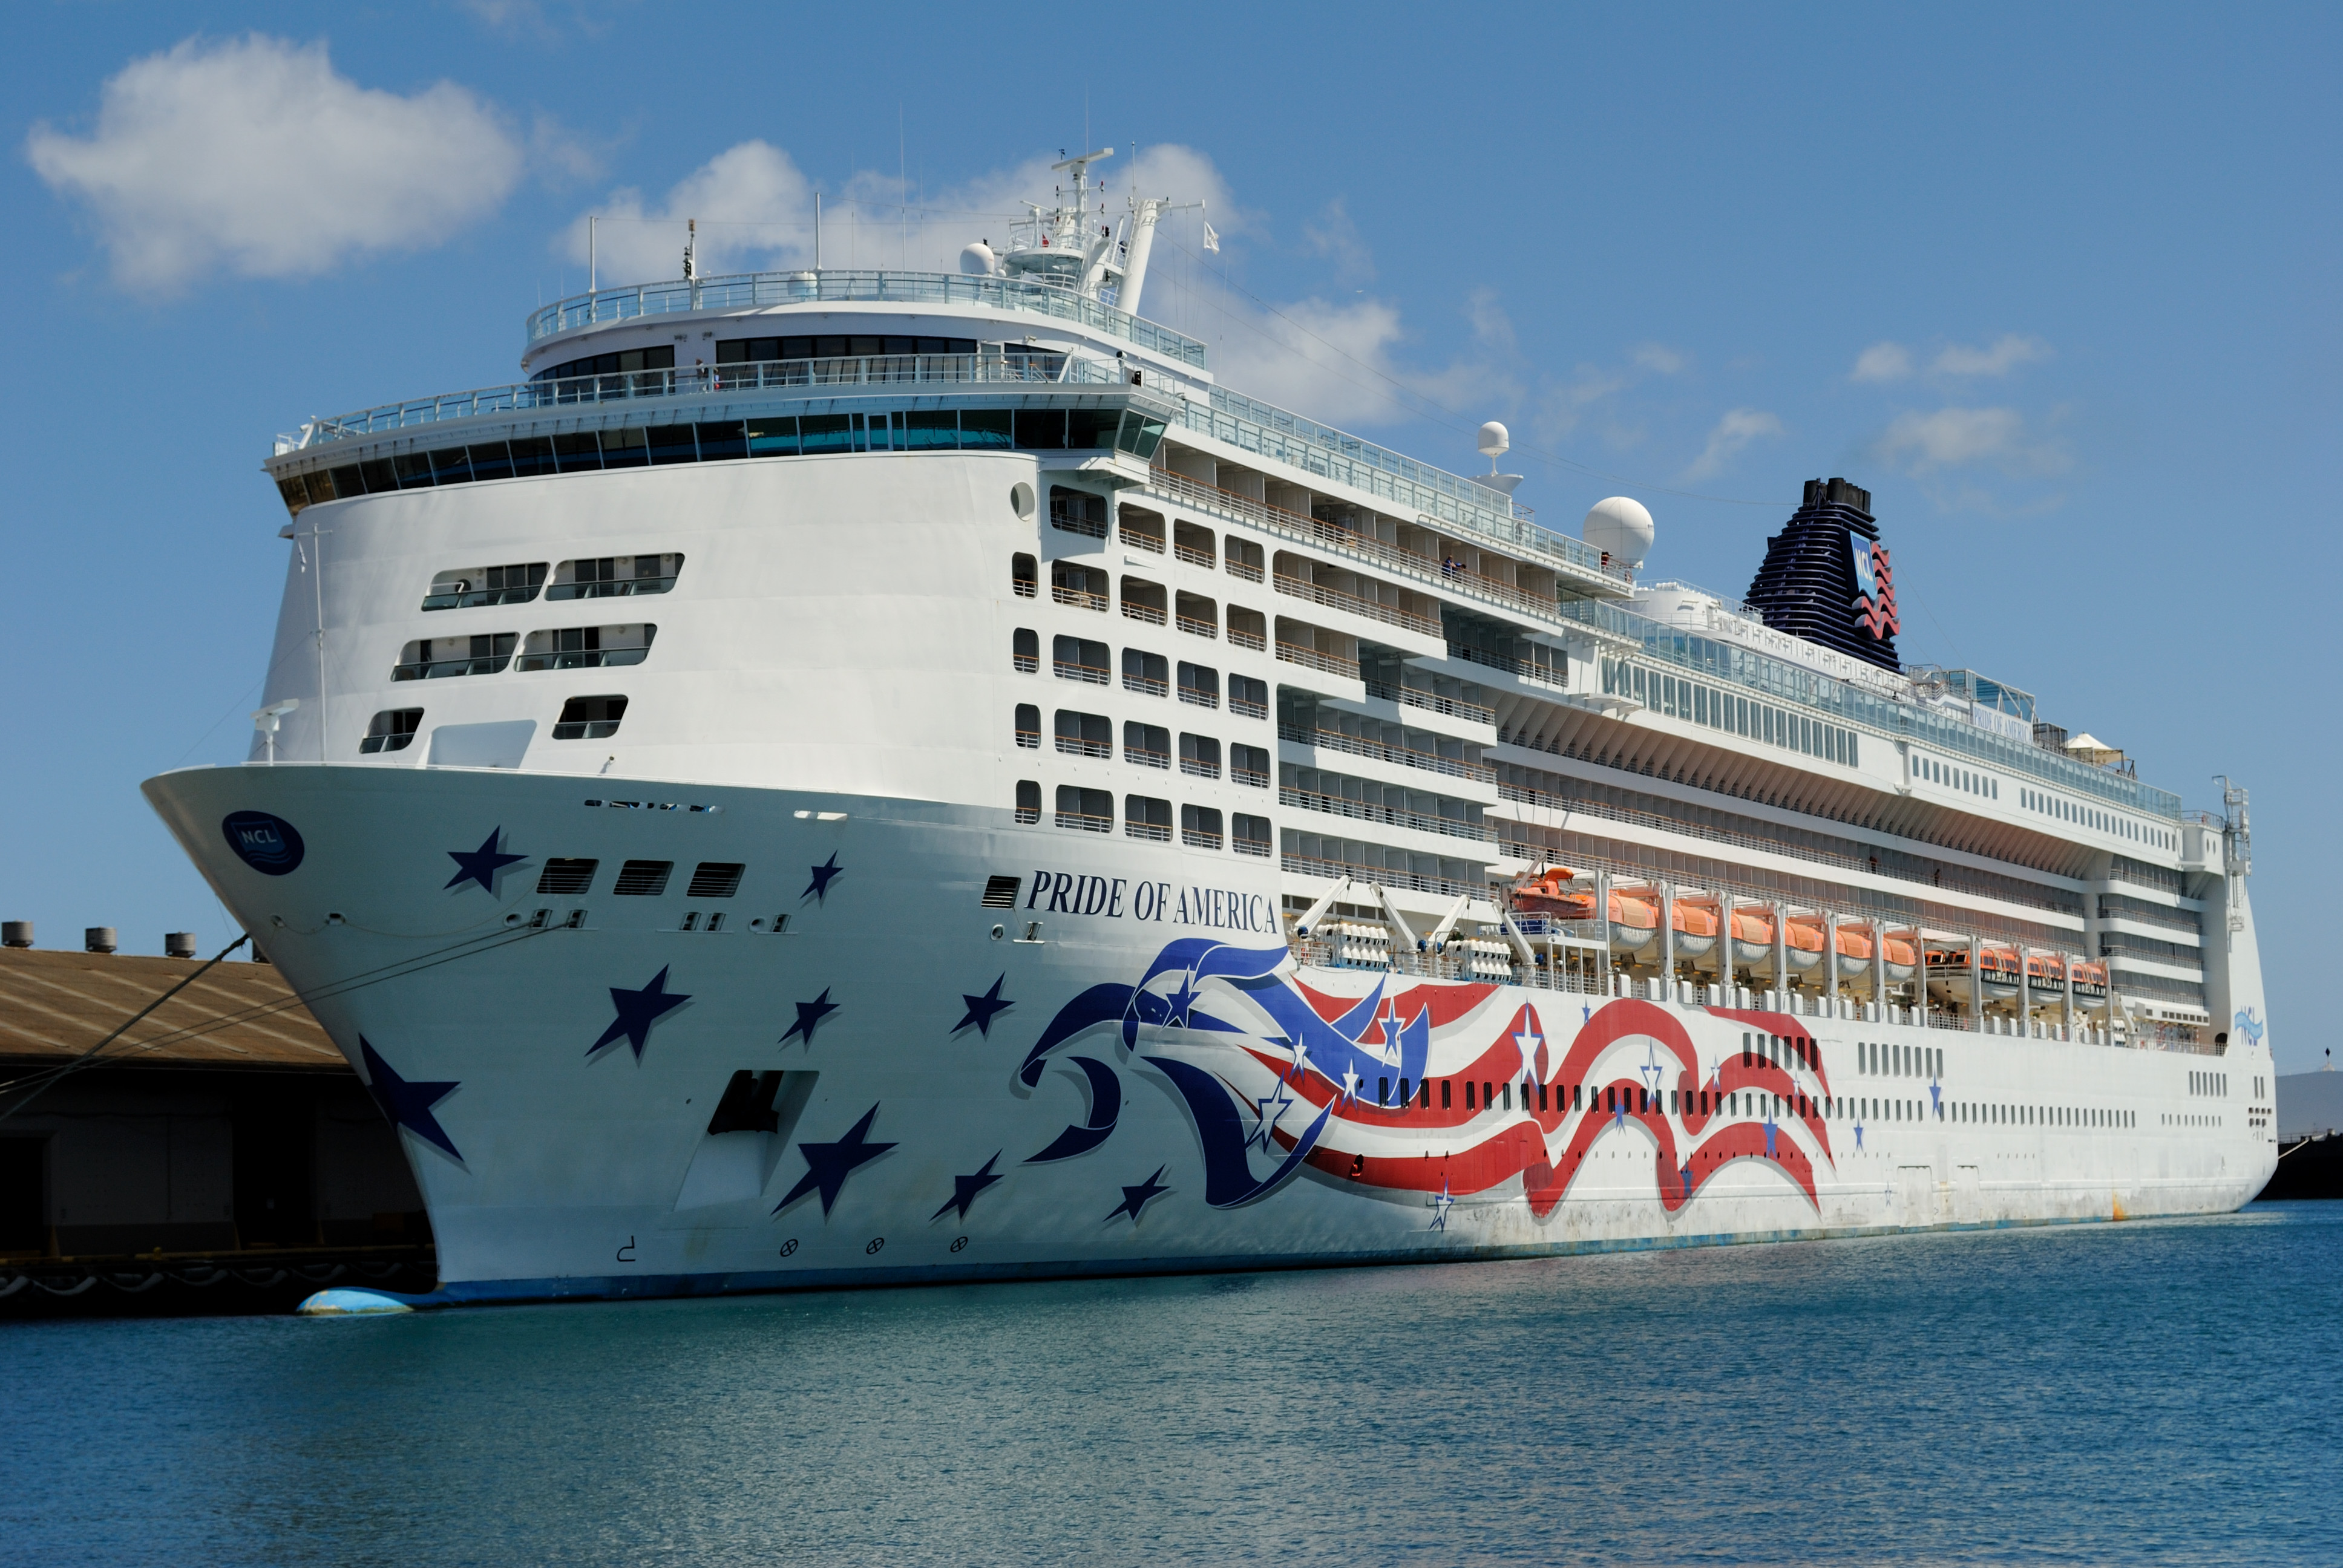 Holland America Prinsendam Cruises: Read Holland America Prinsendam cruise reviews. Find Great deals, tips and tricks on Cruise Critic to help plan your cruise.